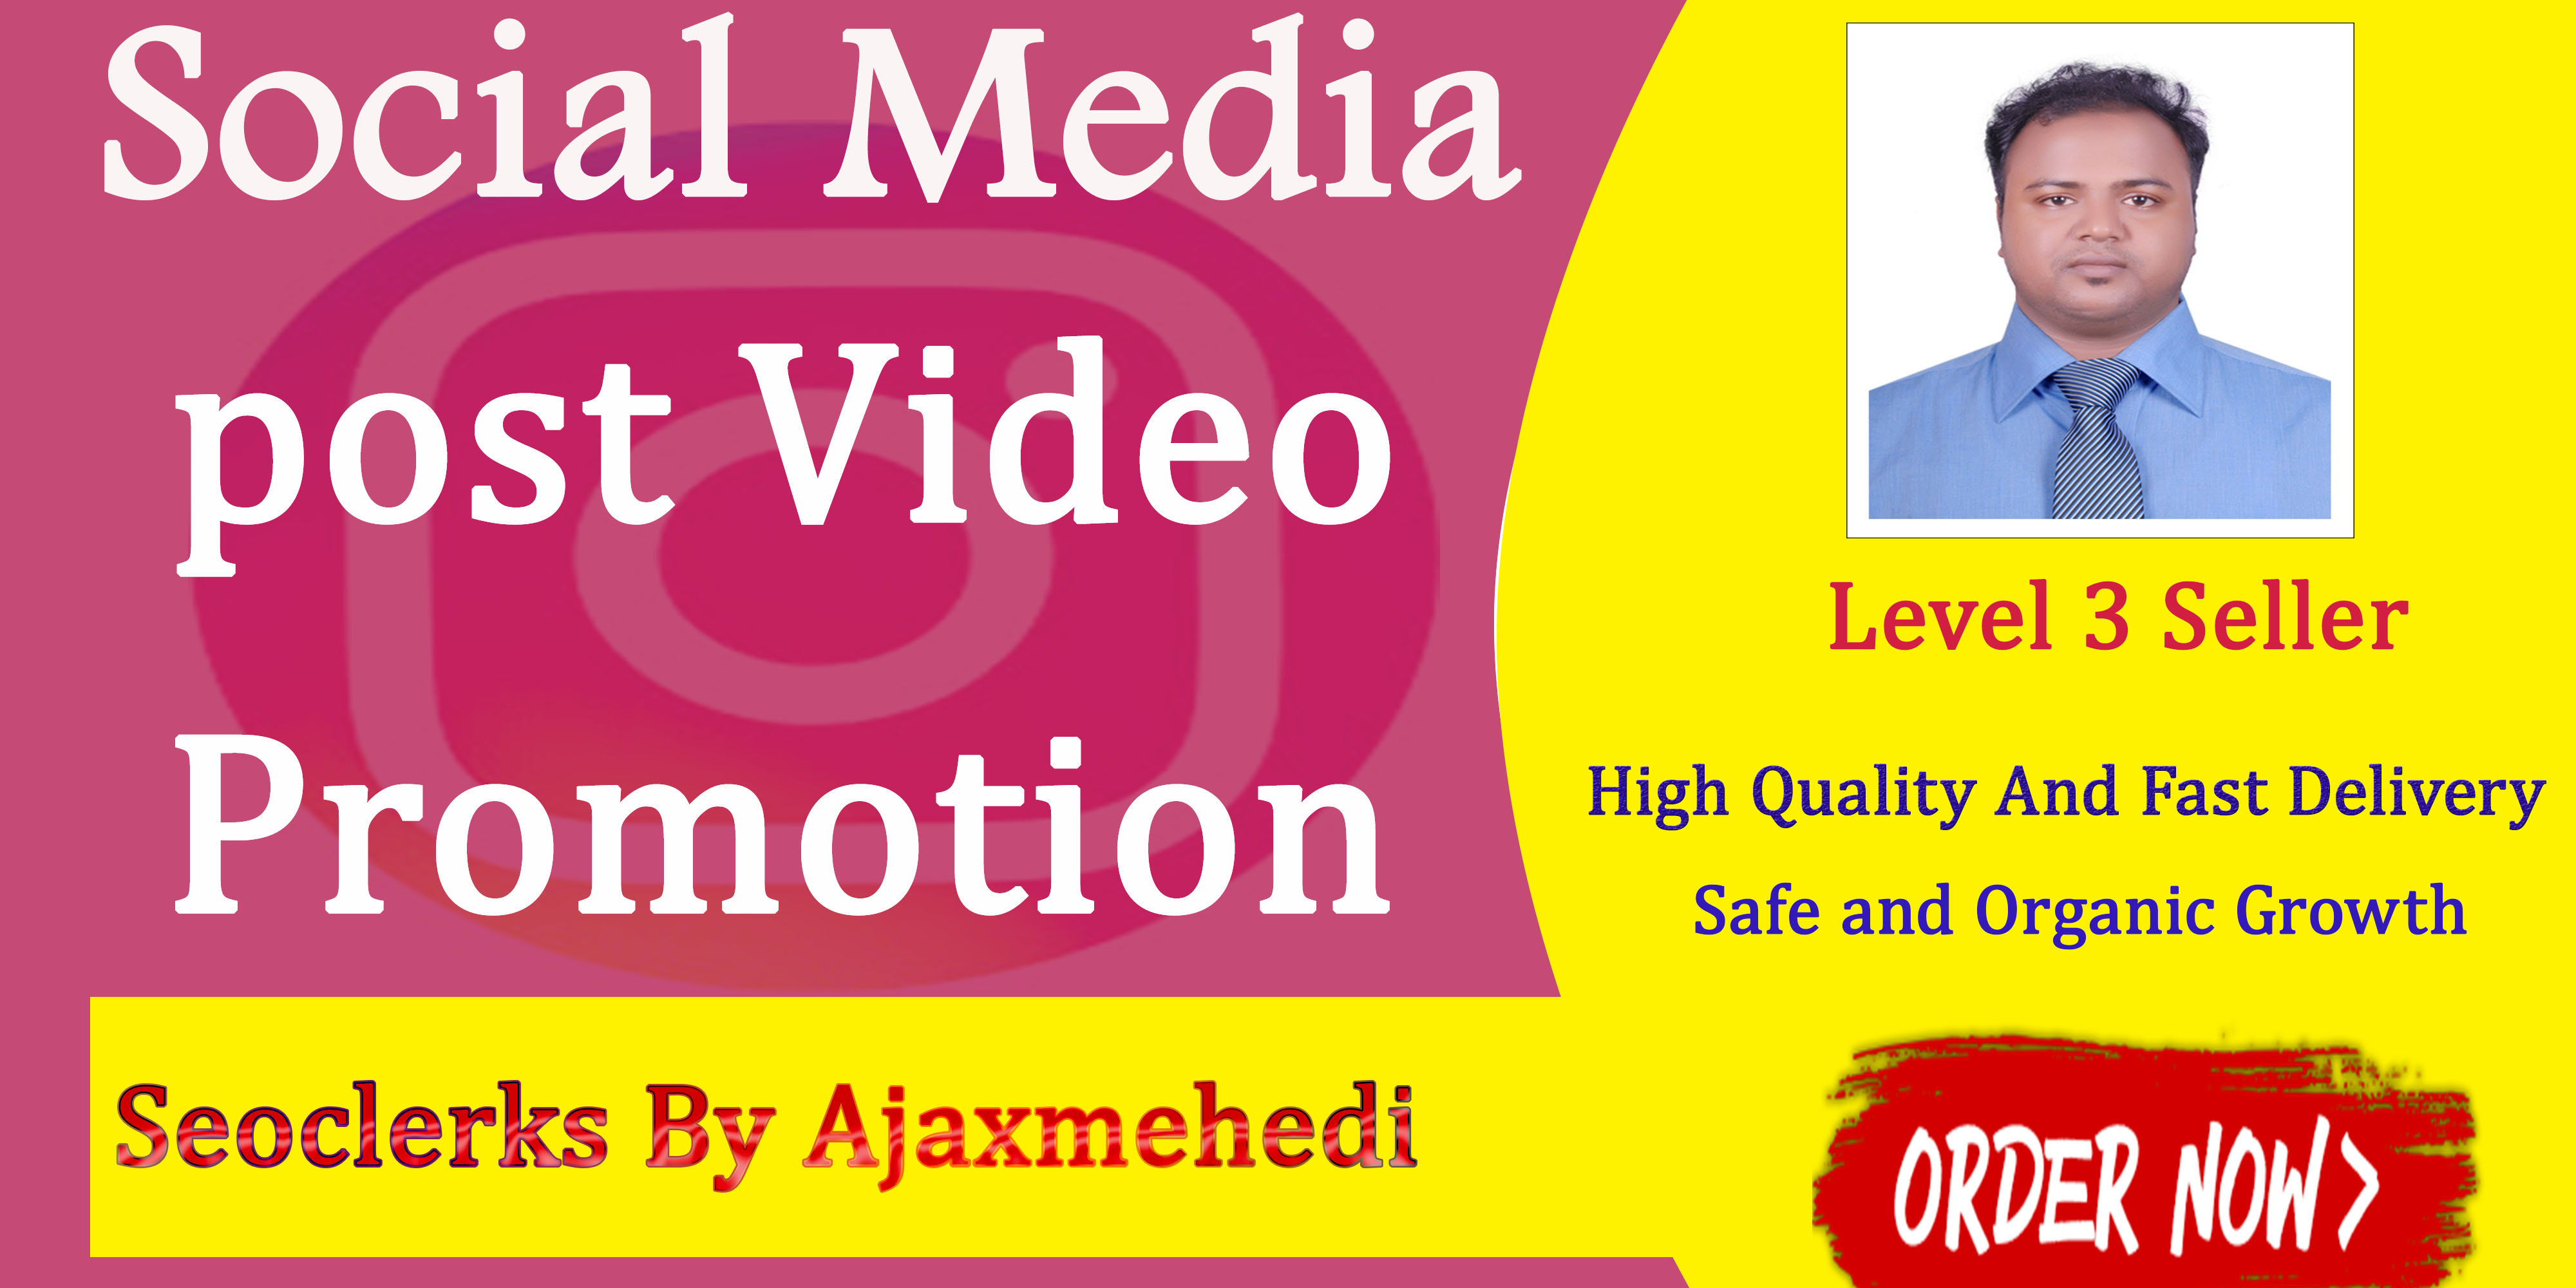 Genuine And ultra fast Do A High-Quality Video Promotion